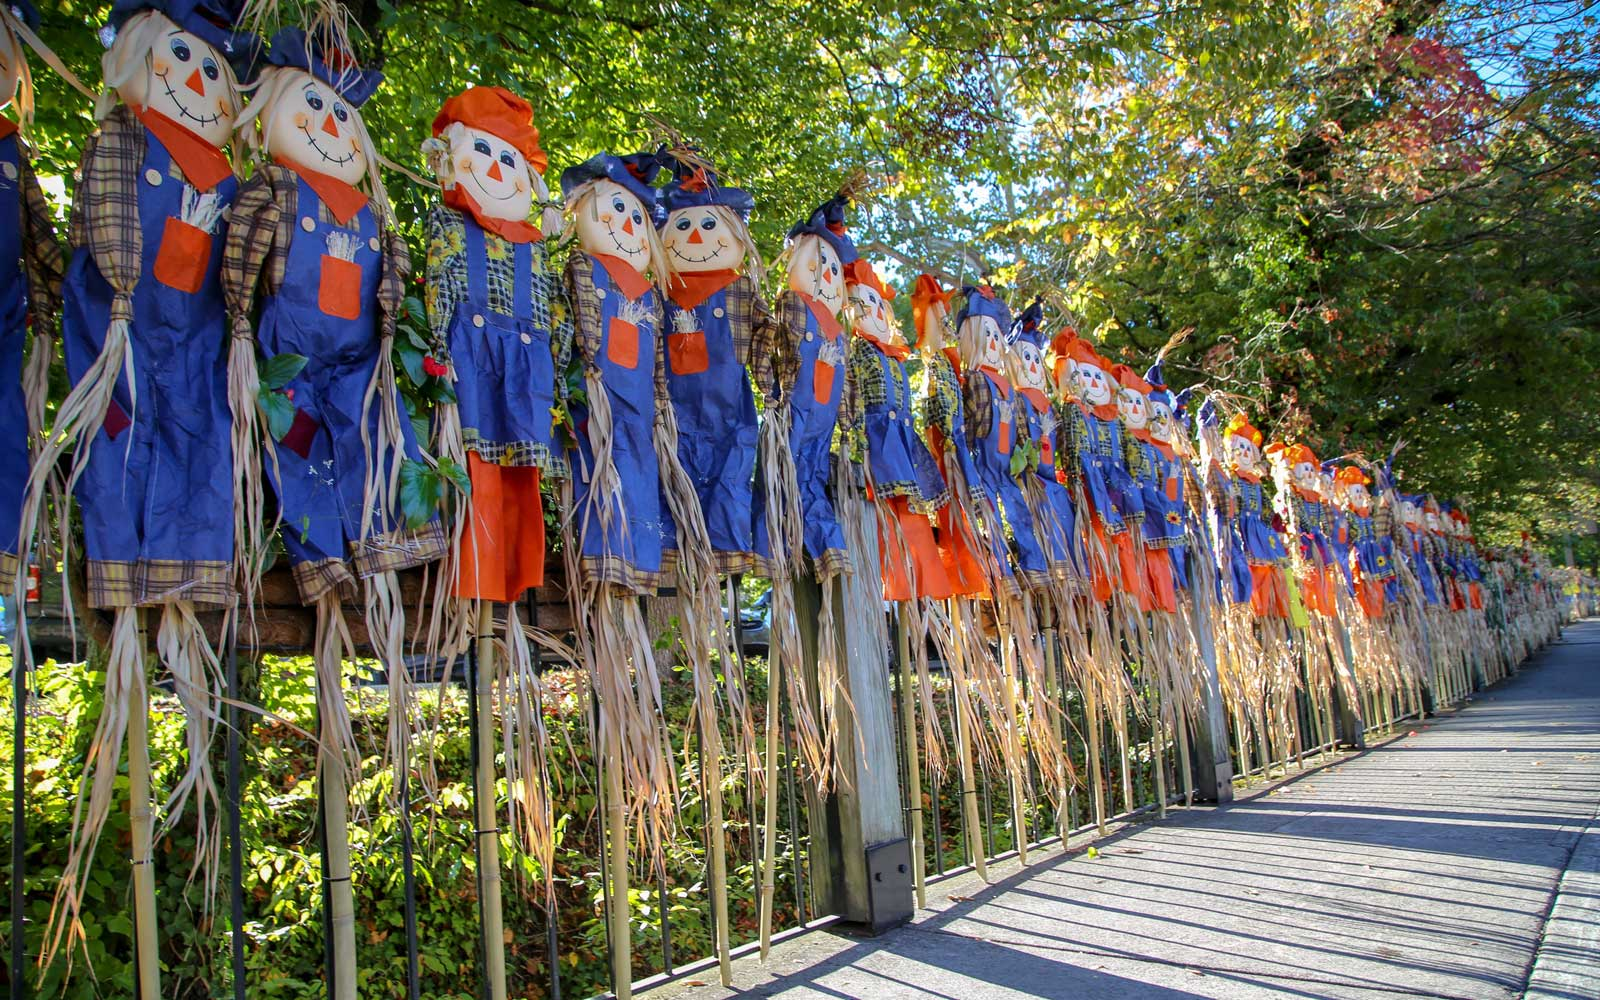 Counting Scarecrows in Gatlinburg, TN